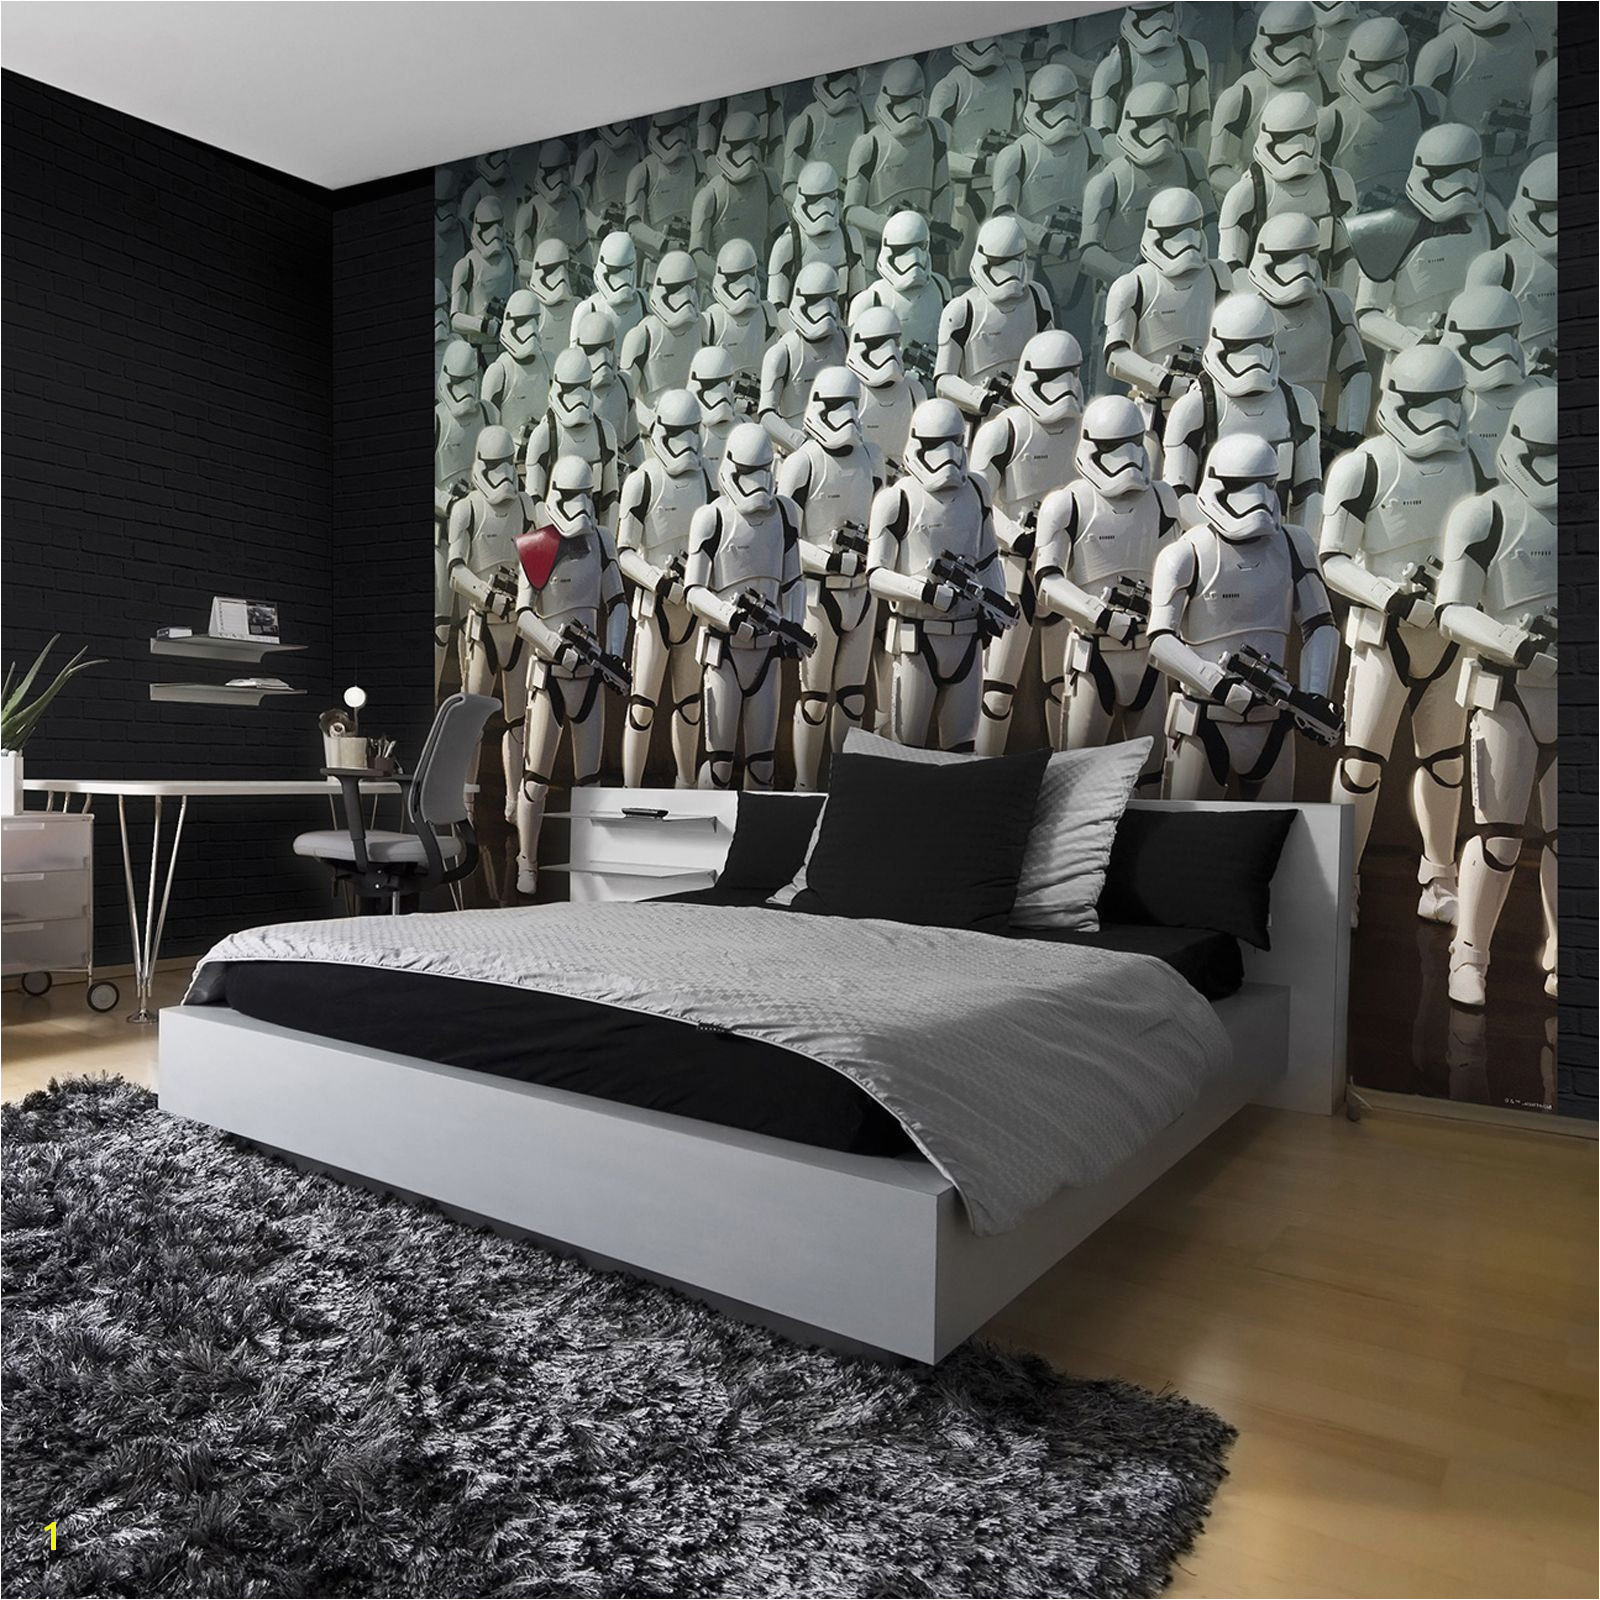 Home theater Wall Murals Star Wars Stormtrooper Wall Mural Dream Bedroom …